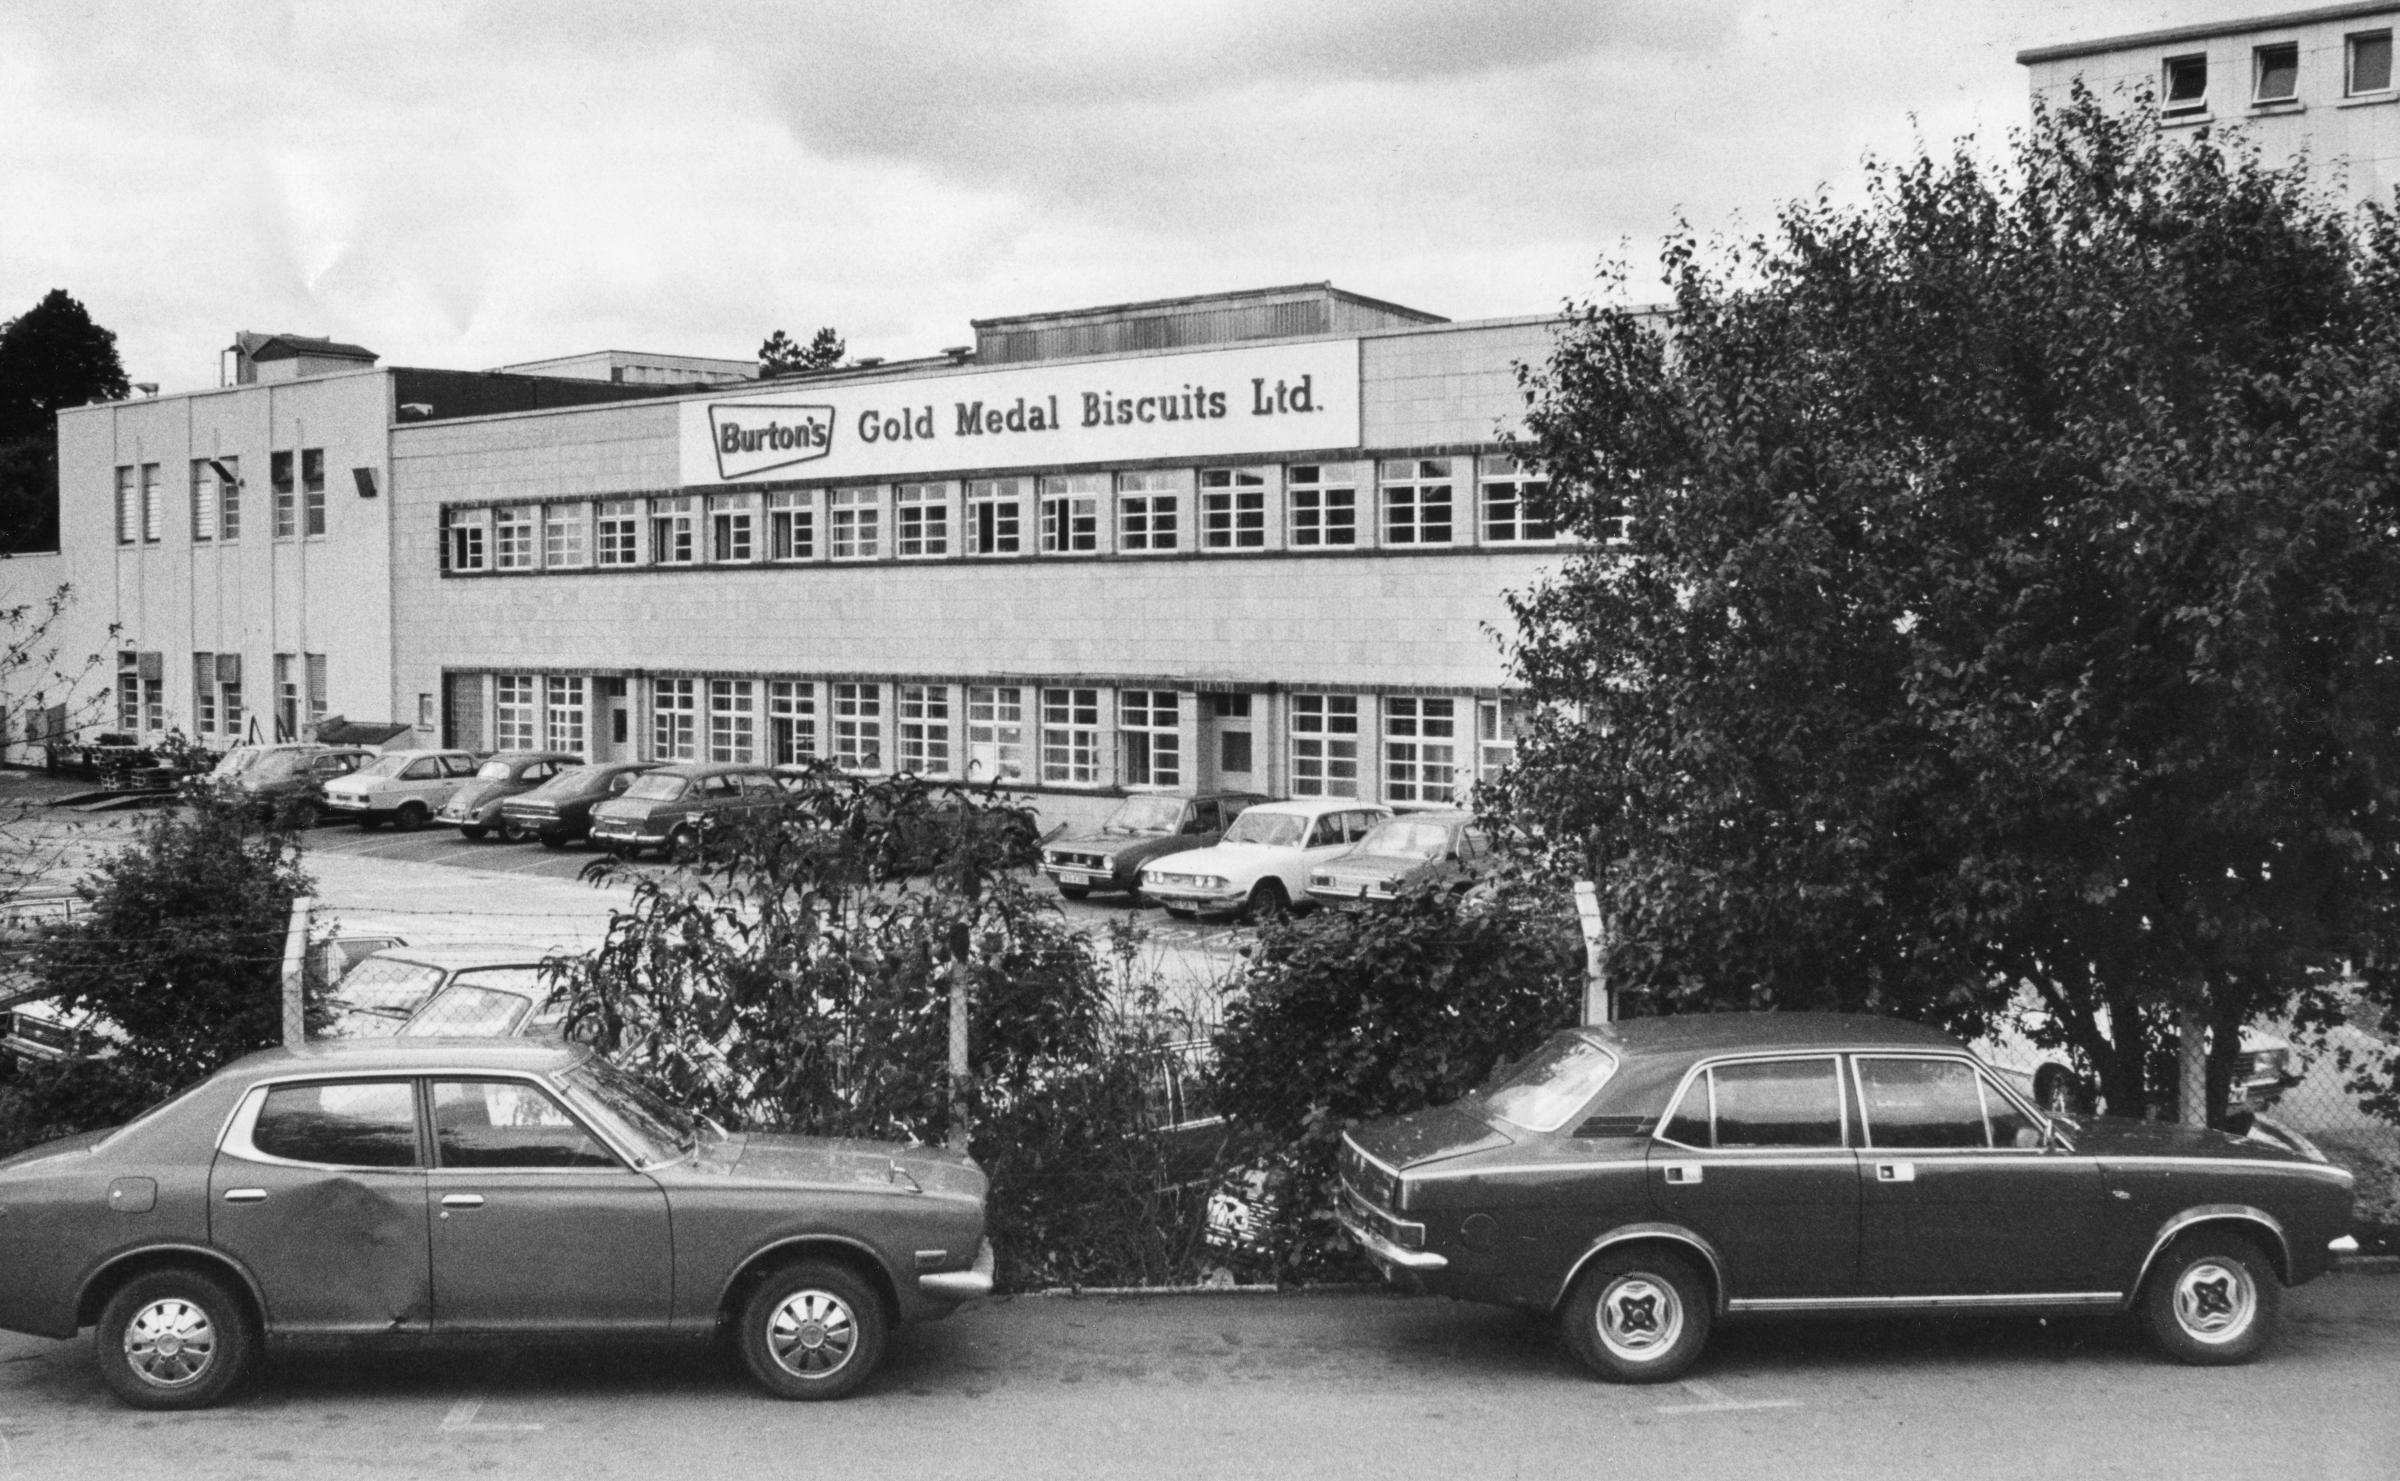 Burtons biscuits factory in Cwmbran in 1983